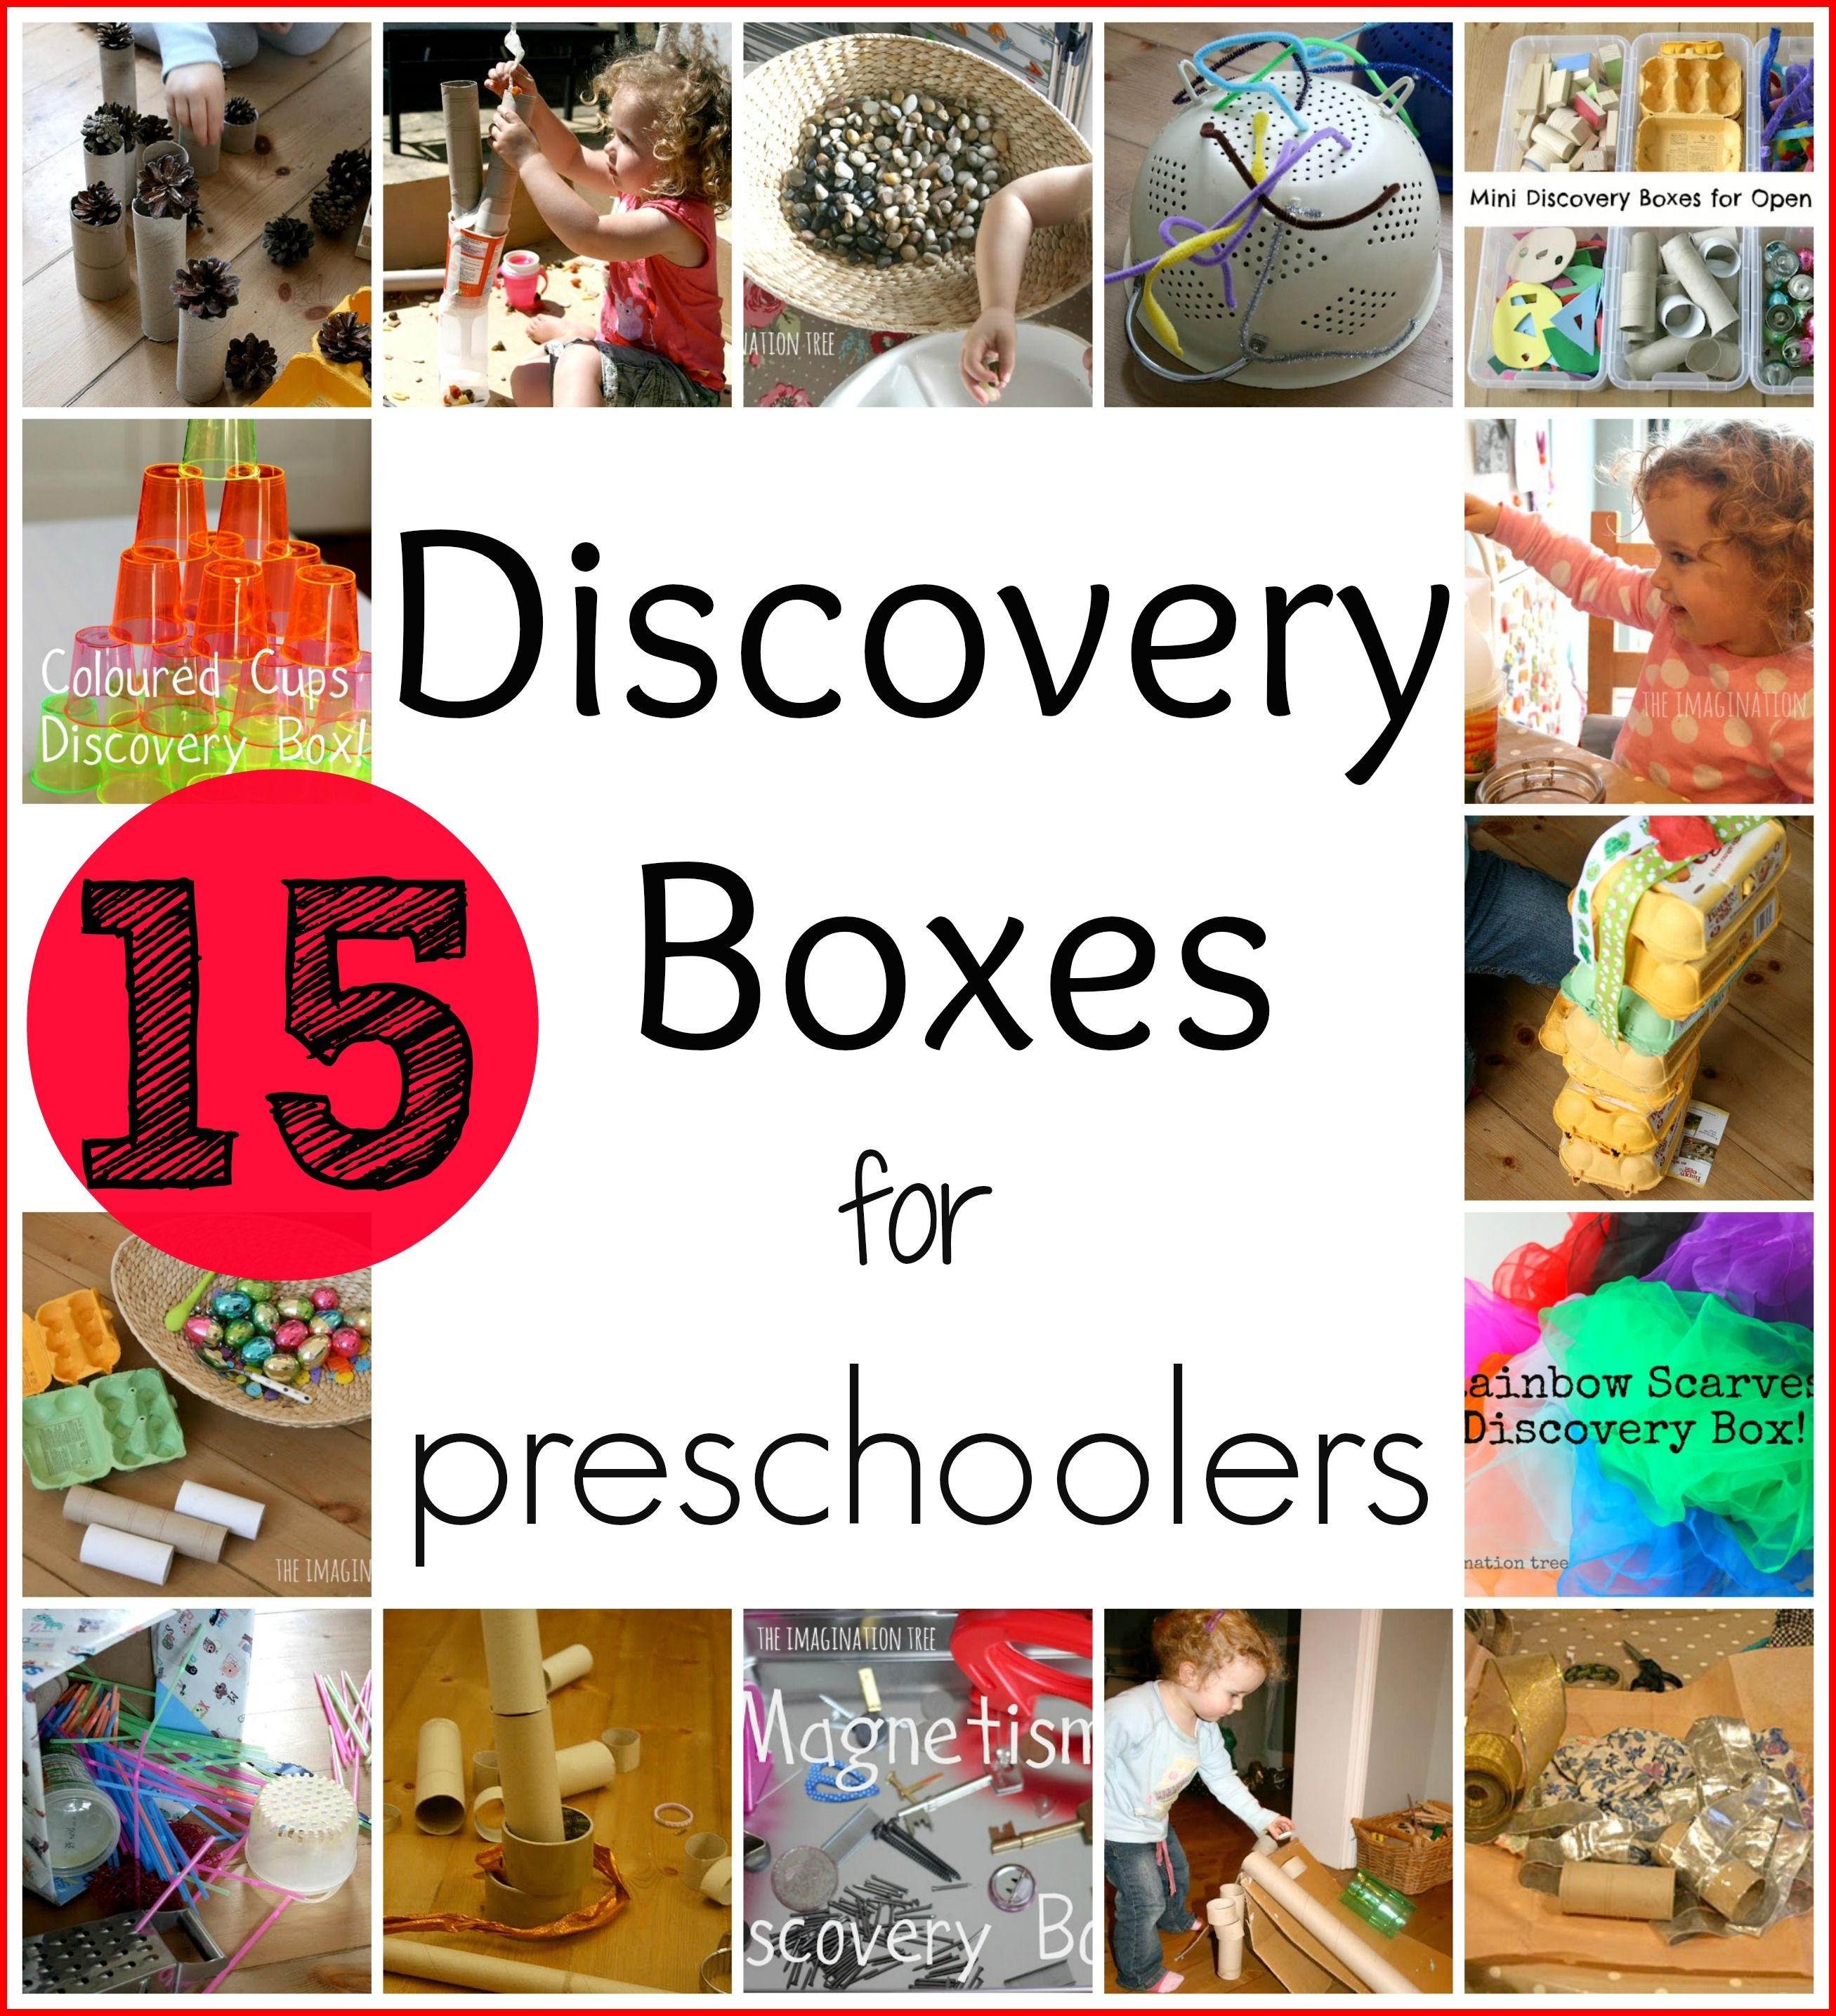 15-discovery-boxes-for-toddlers-and-preschoolers.jpg 2614×2871 pikseli